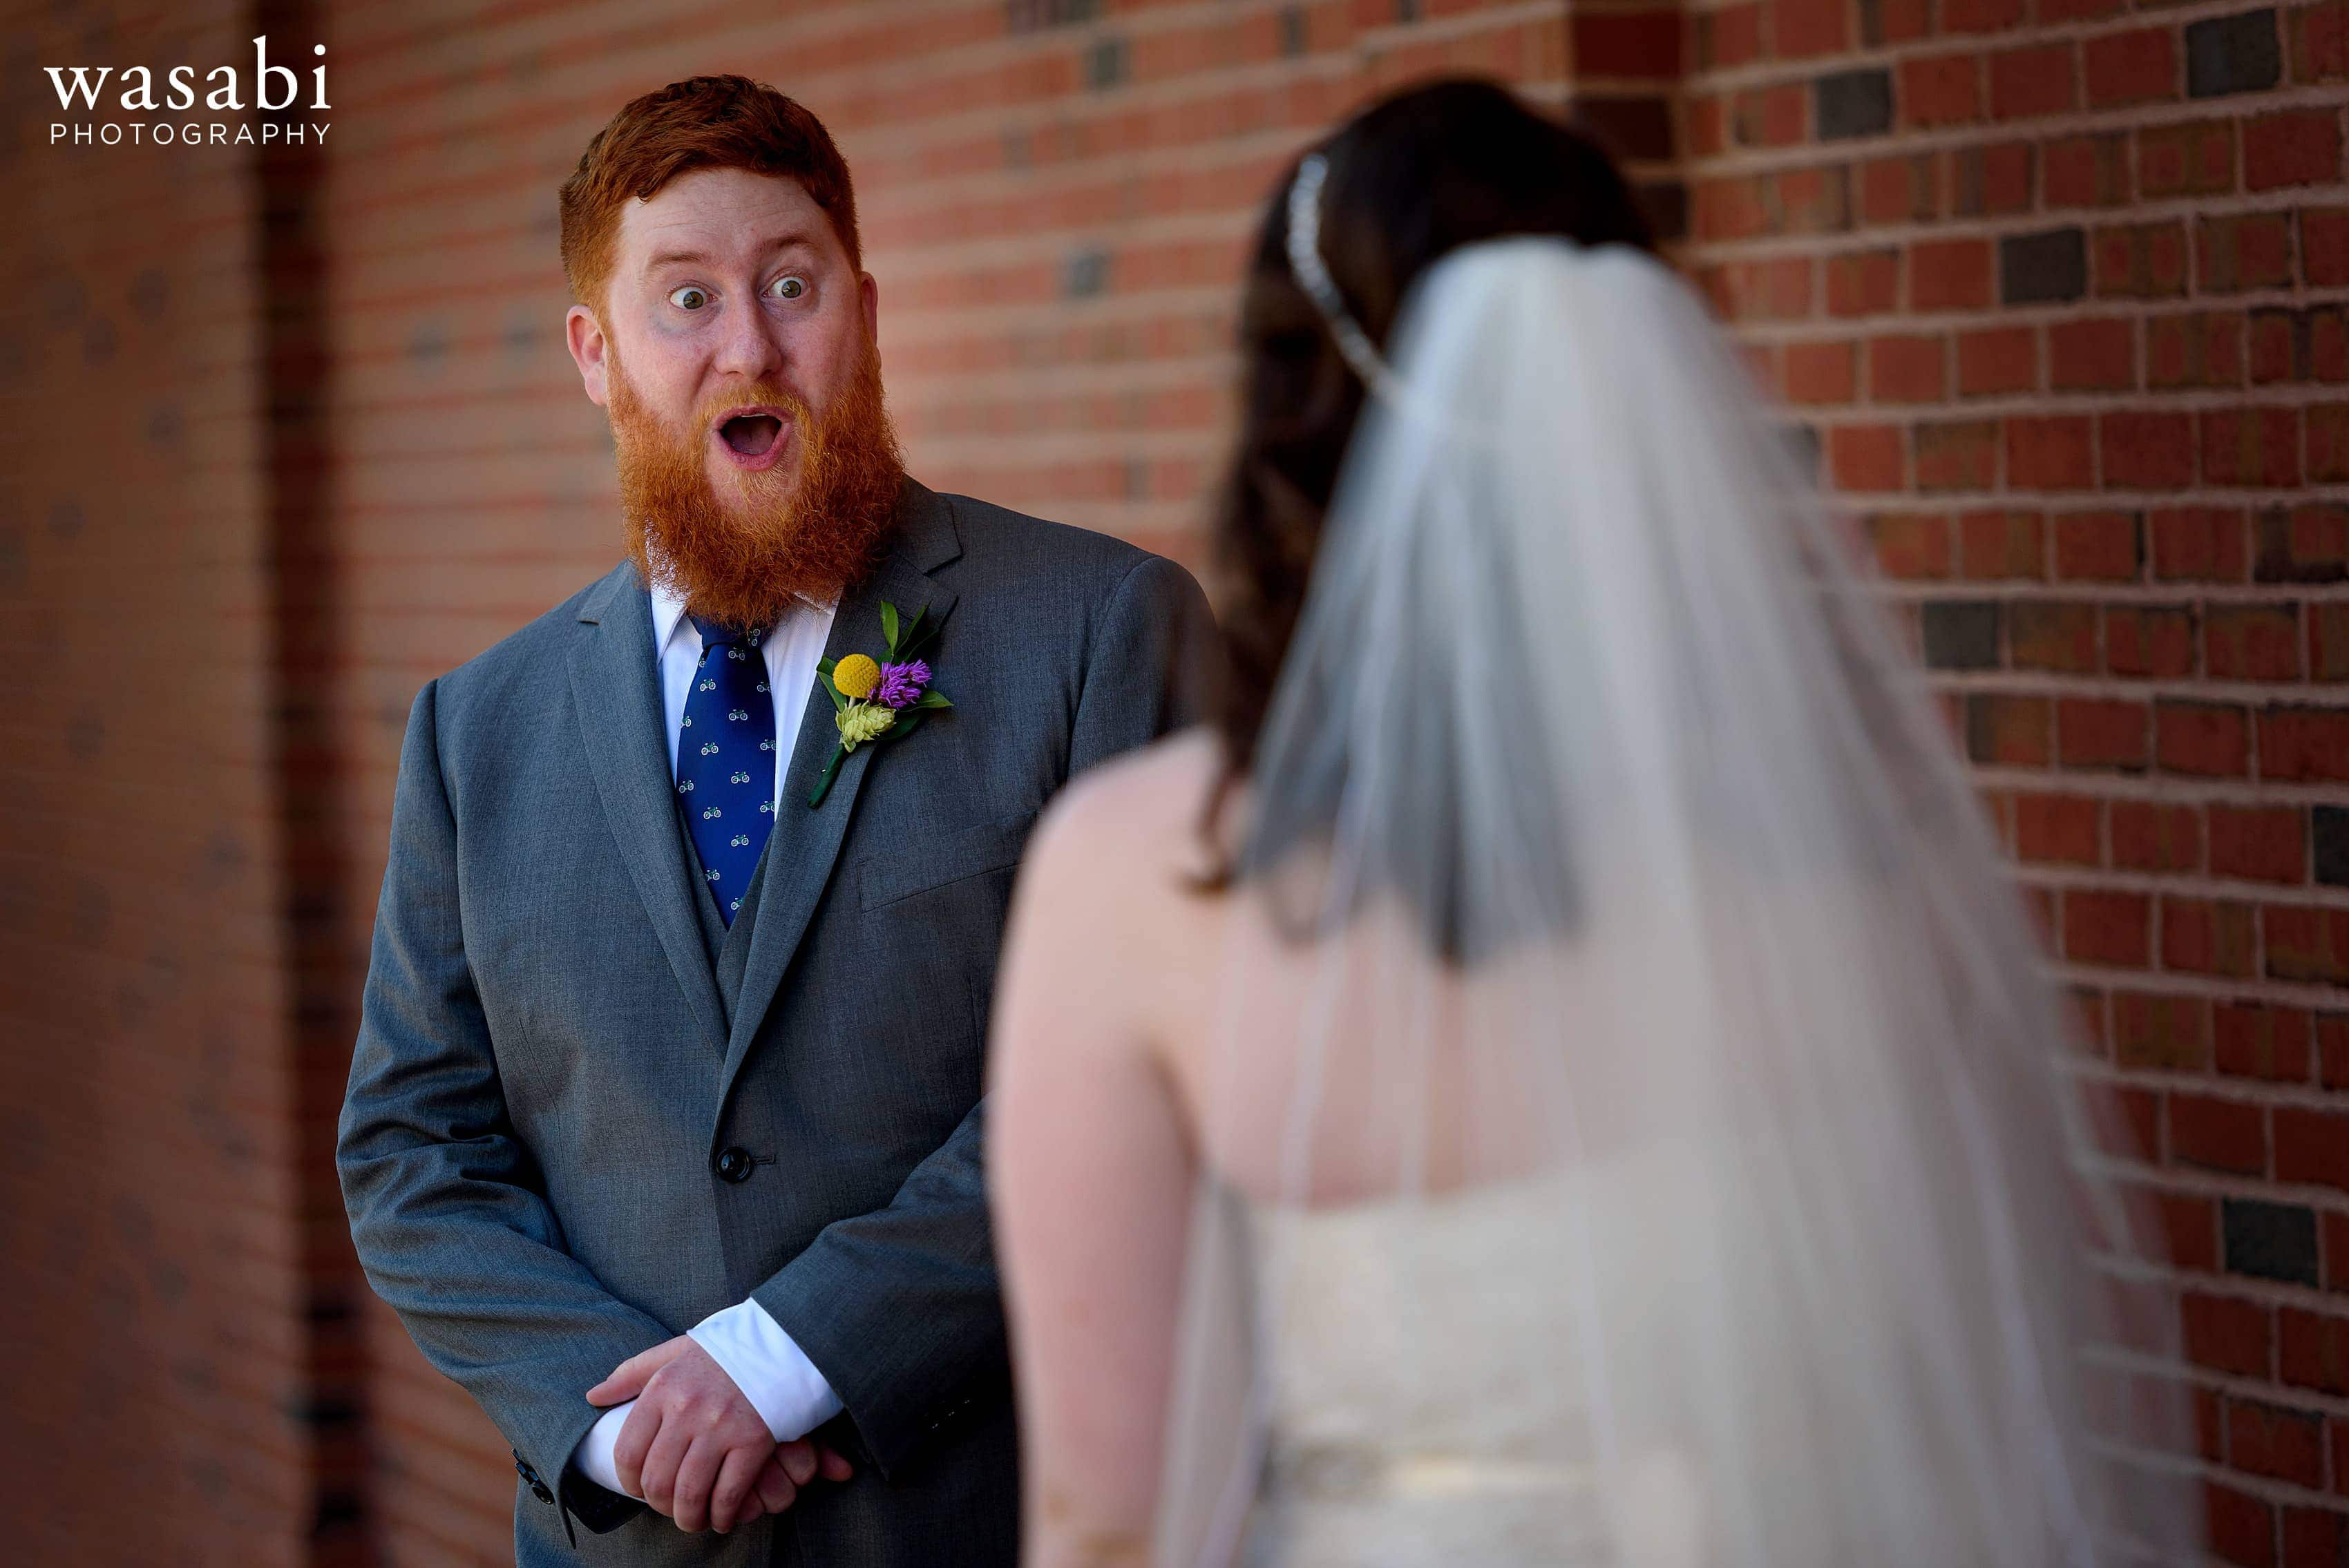 A groom reacts with a huge wide-eyed expression during a first look behind the bleachers at Wrigley Field in Chicago